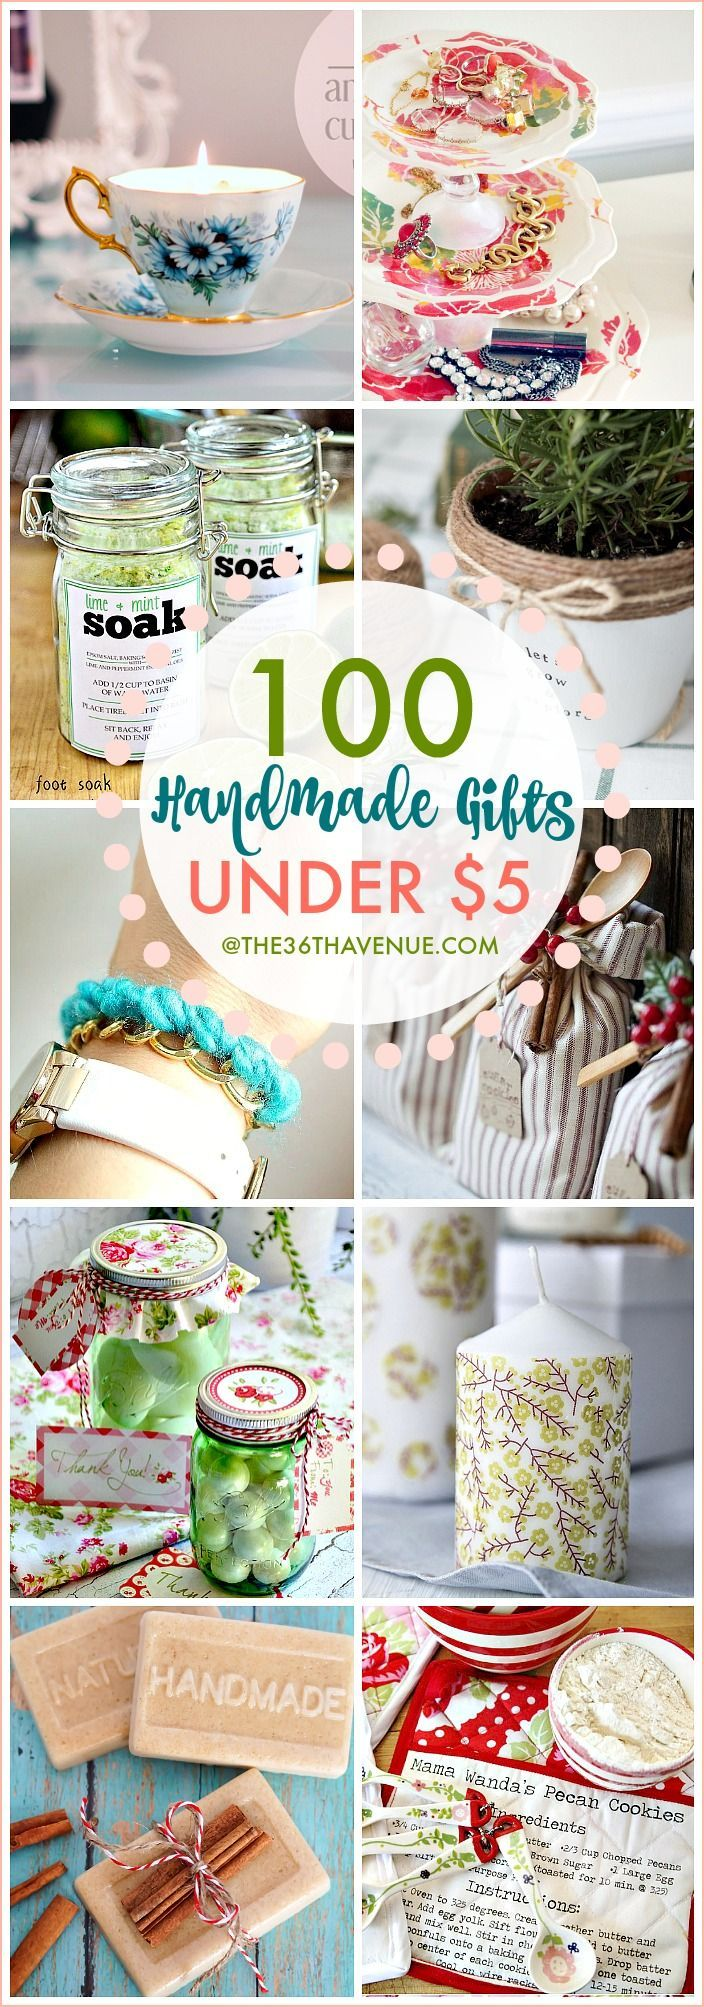 Over 100 Handmade Gifts that are perfect for Christmas gifts ...